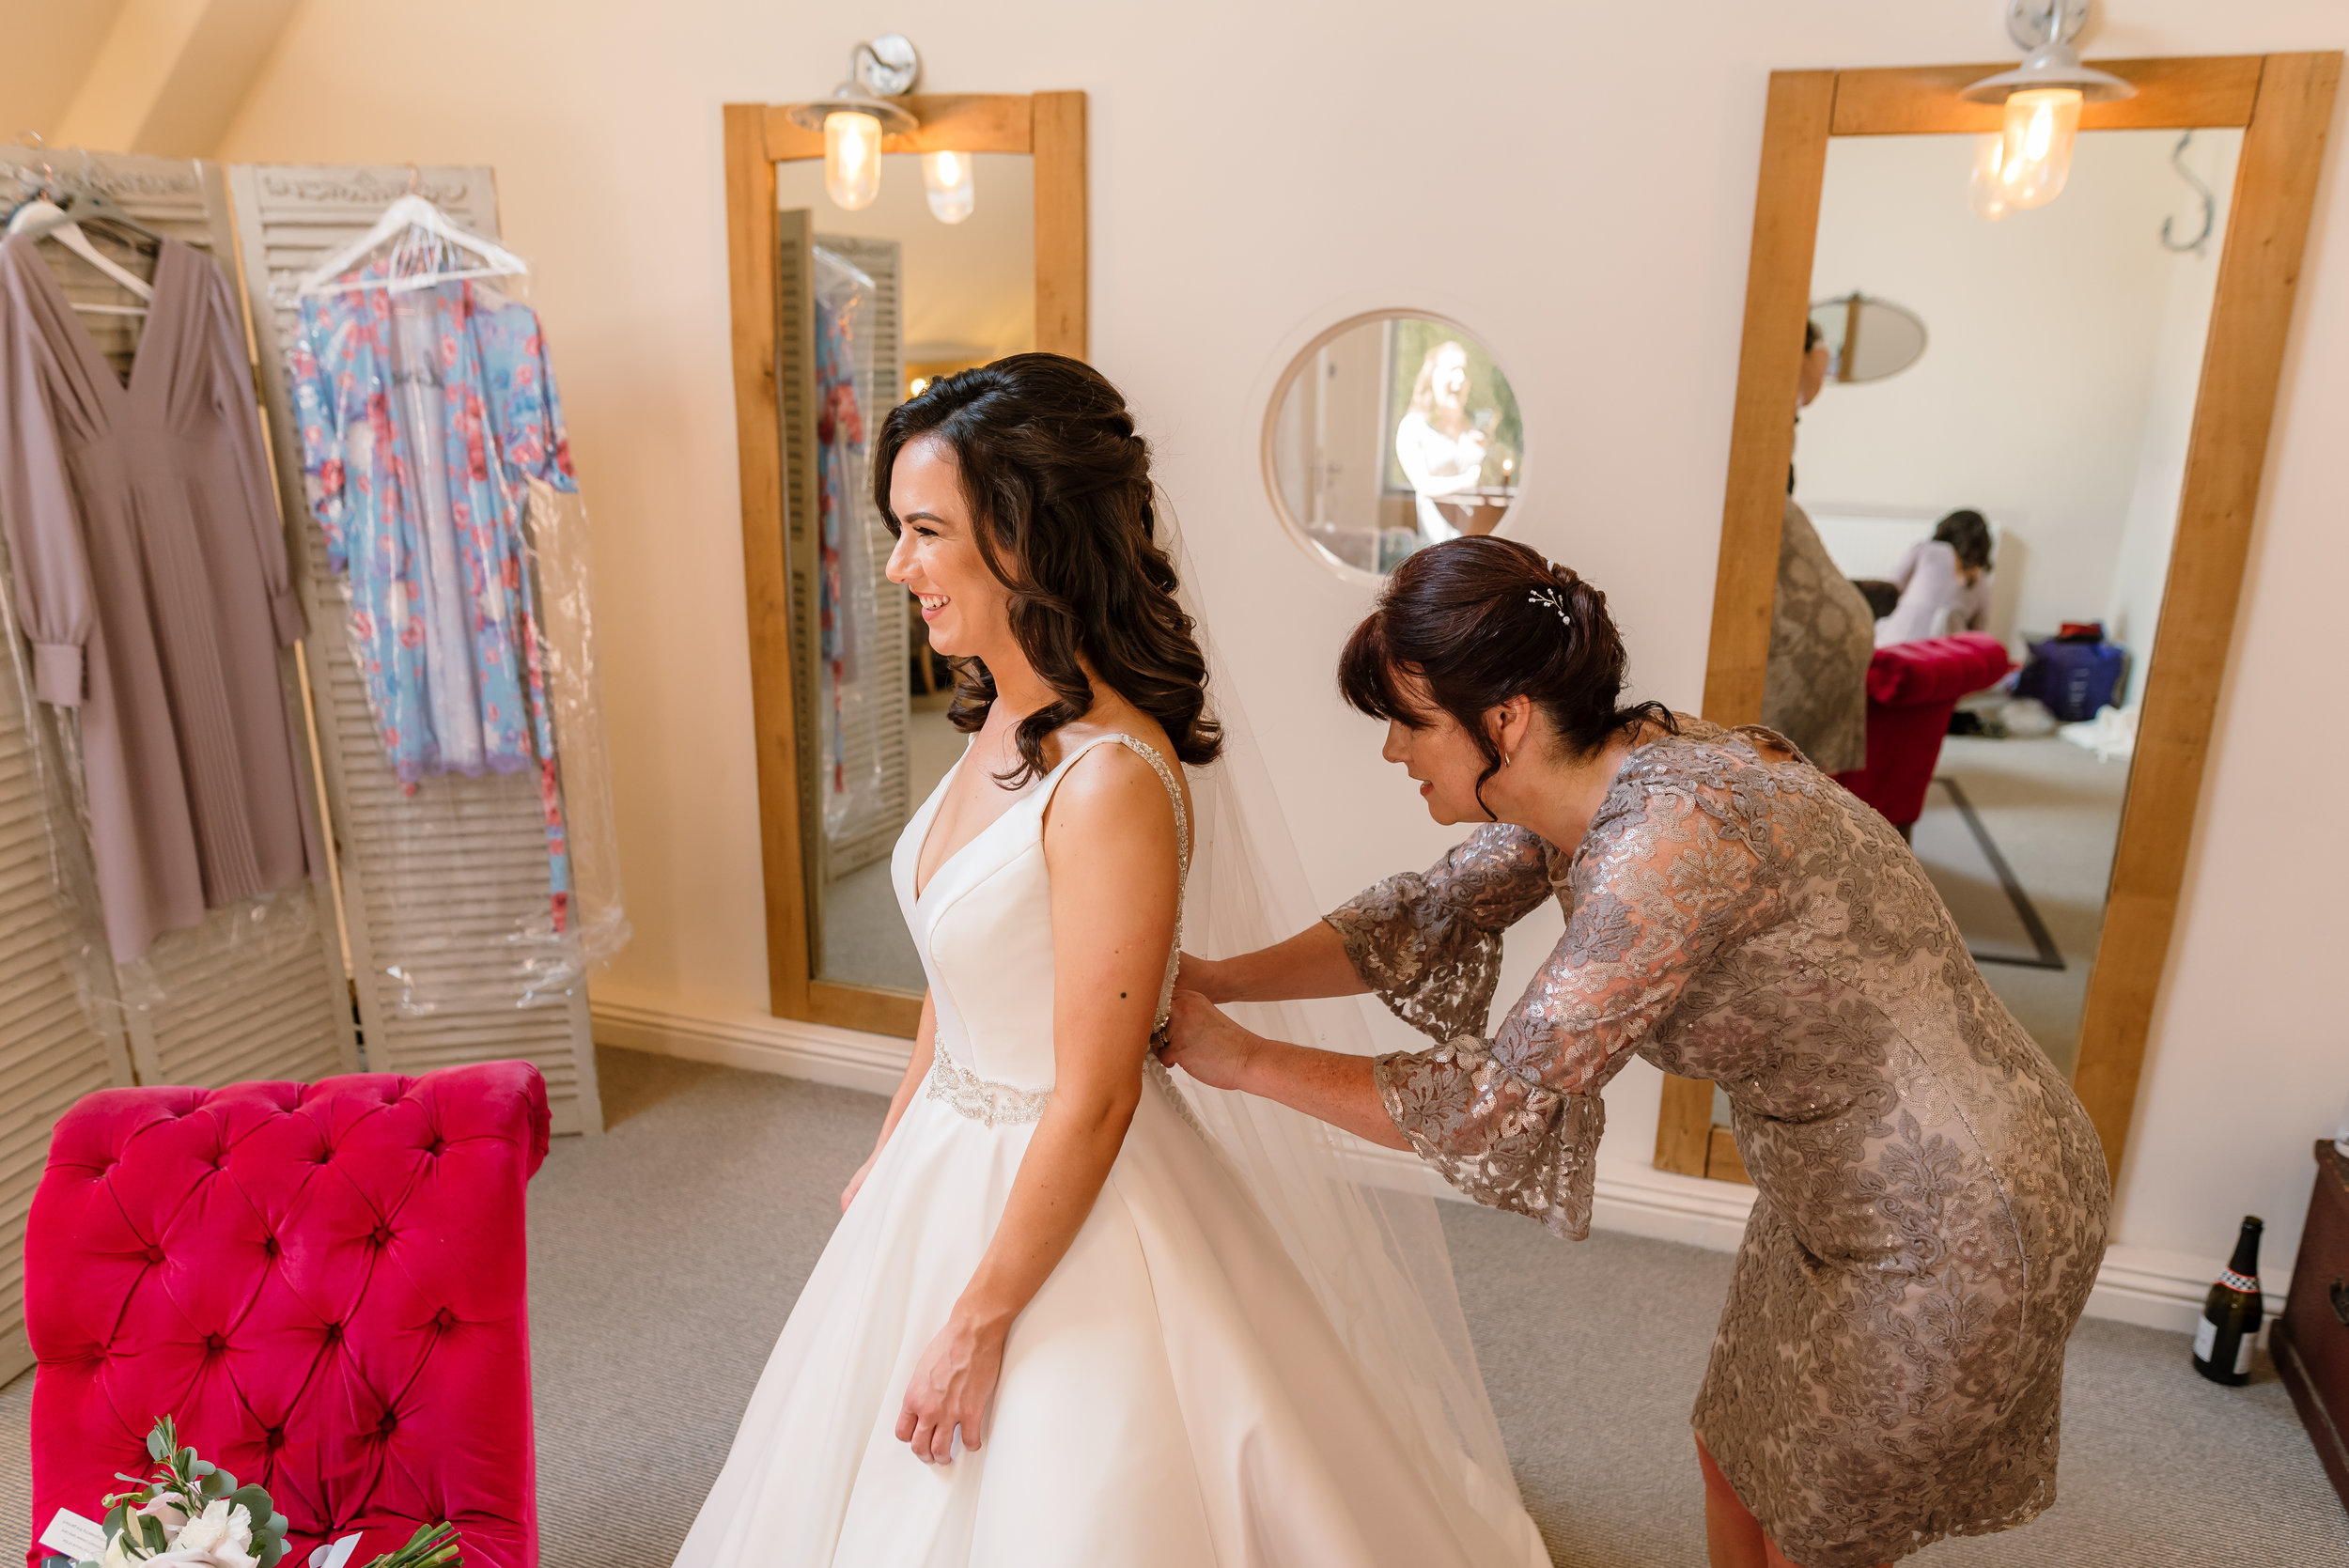 Sarah-Fishlock-Photography / Hampshire-wedding-photographer-hampshire / fleet-wedding-photographer-fleet / Millbridge-Court-Wedding-Photographer / Millbridge-Court-Wedding-